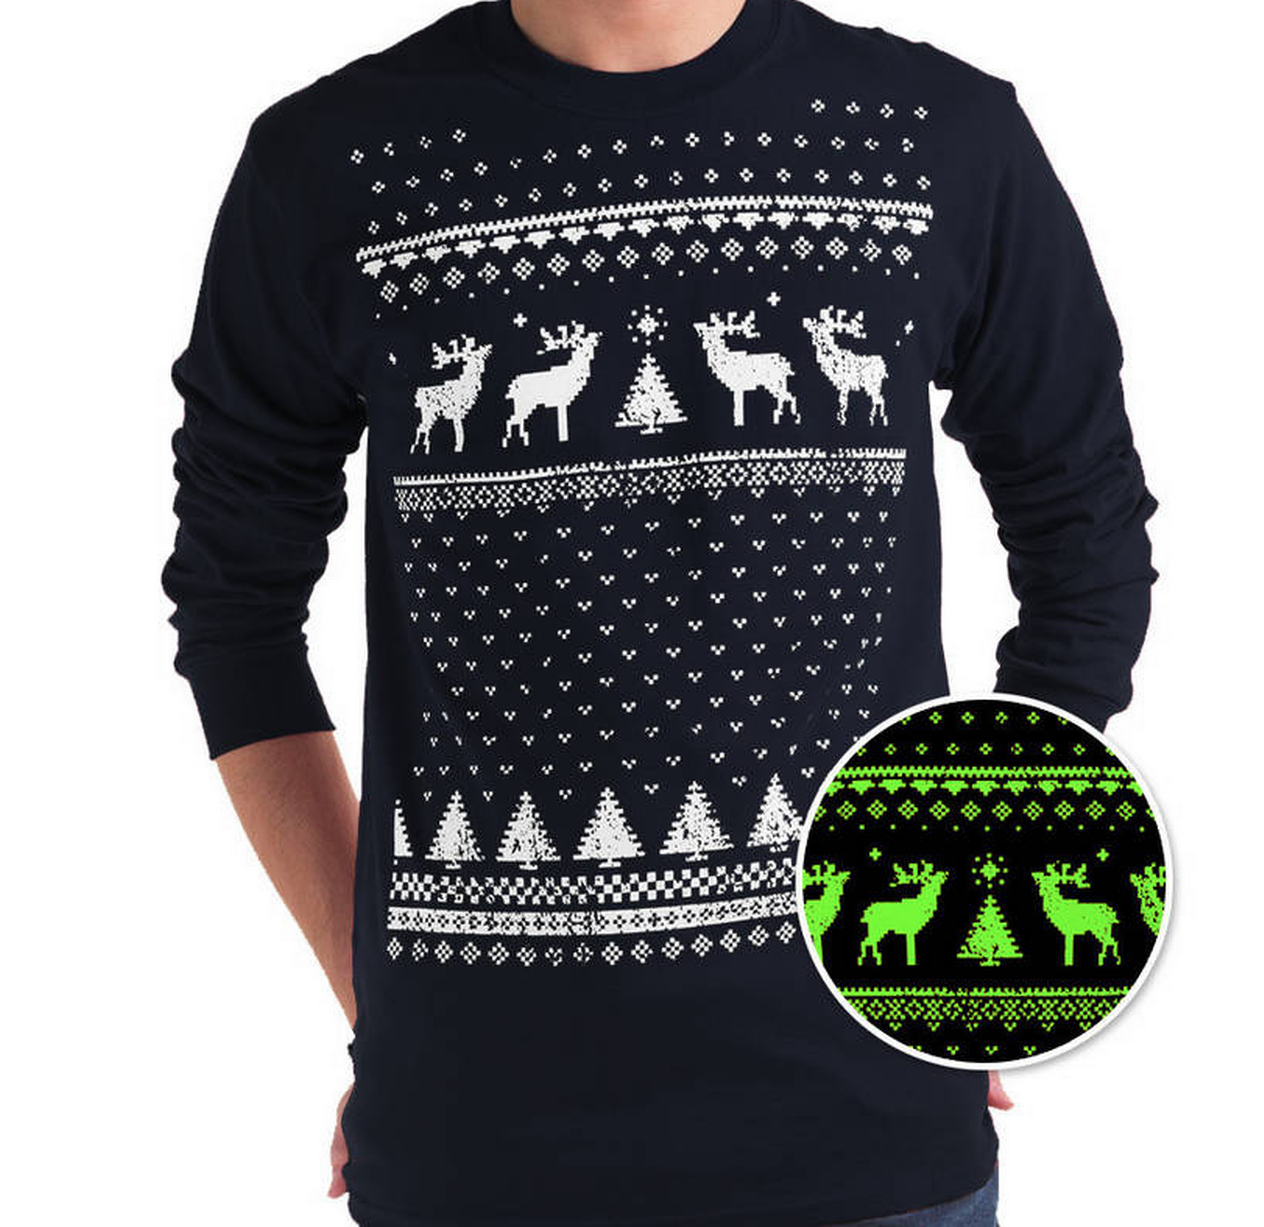 We all know someone who loves a bit of nerdy stuff! We have got the perfect jumper for them a glow in the dark Christmas jumper... YES you heard right Glow in the dark!  you can pick it up for just   £20.00  https://www.etsy.com/uk/listing/210823011/glow-in-the-dark-reindeer-christmas?gpla=1&gao=1&&utm_source=google&utm_medium=cpc&utm_campaign=shopping_uk_en_gb_christmas-clothing&utm_custom1=9a8c4f20-a3c8-4afb-a973-0575c7b34293&gclid=EAIaIQobChMI5JHS2ZXv3QIVr73tCh2XigRaEAQYBSABEgKDy_D_BwE